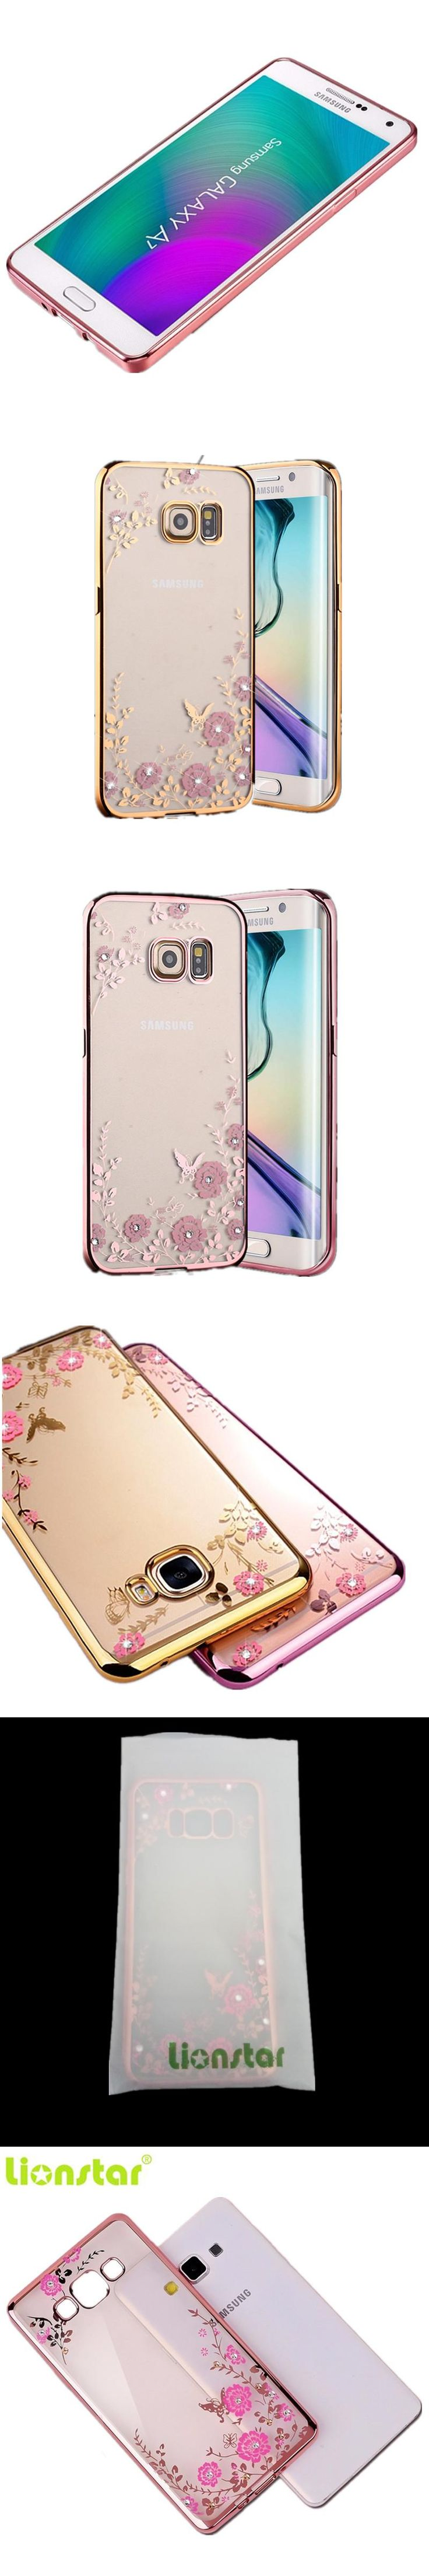 LIONSTAR TPU Case for Samsung Galaxy S3 S4 S5 S6 S7 Edge S8 Plus Cases Silicone Cover for Samsung Note 2 3 4 5 C5 C7 C9pro Etui